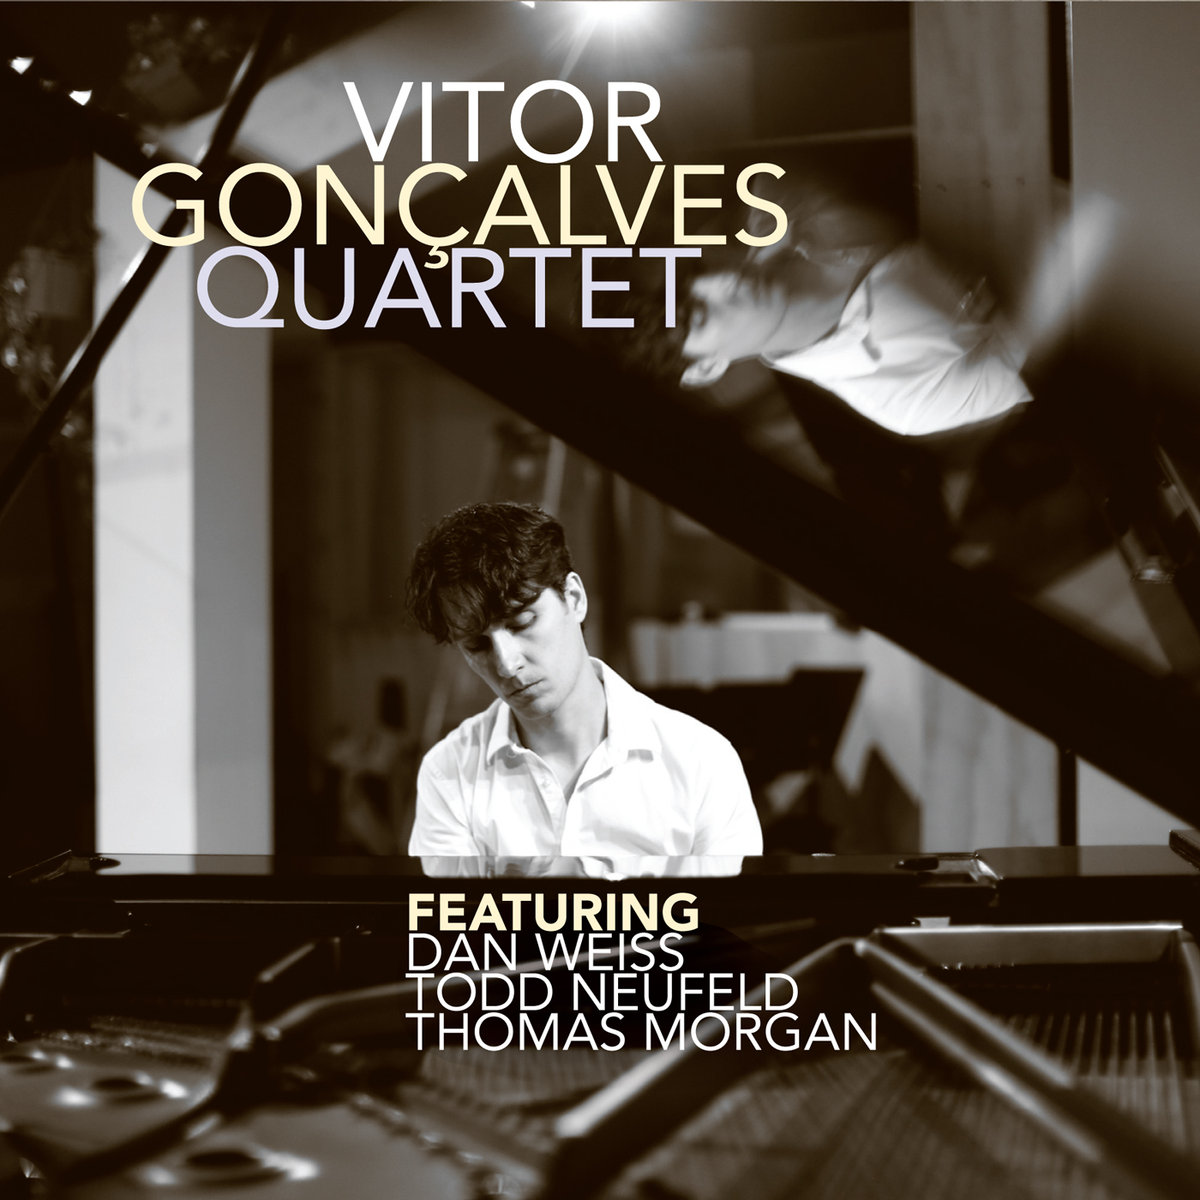 REVIEW: Vitor Gonçalves Quartet - Vitor Gonçalves Quartet